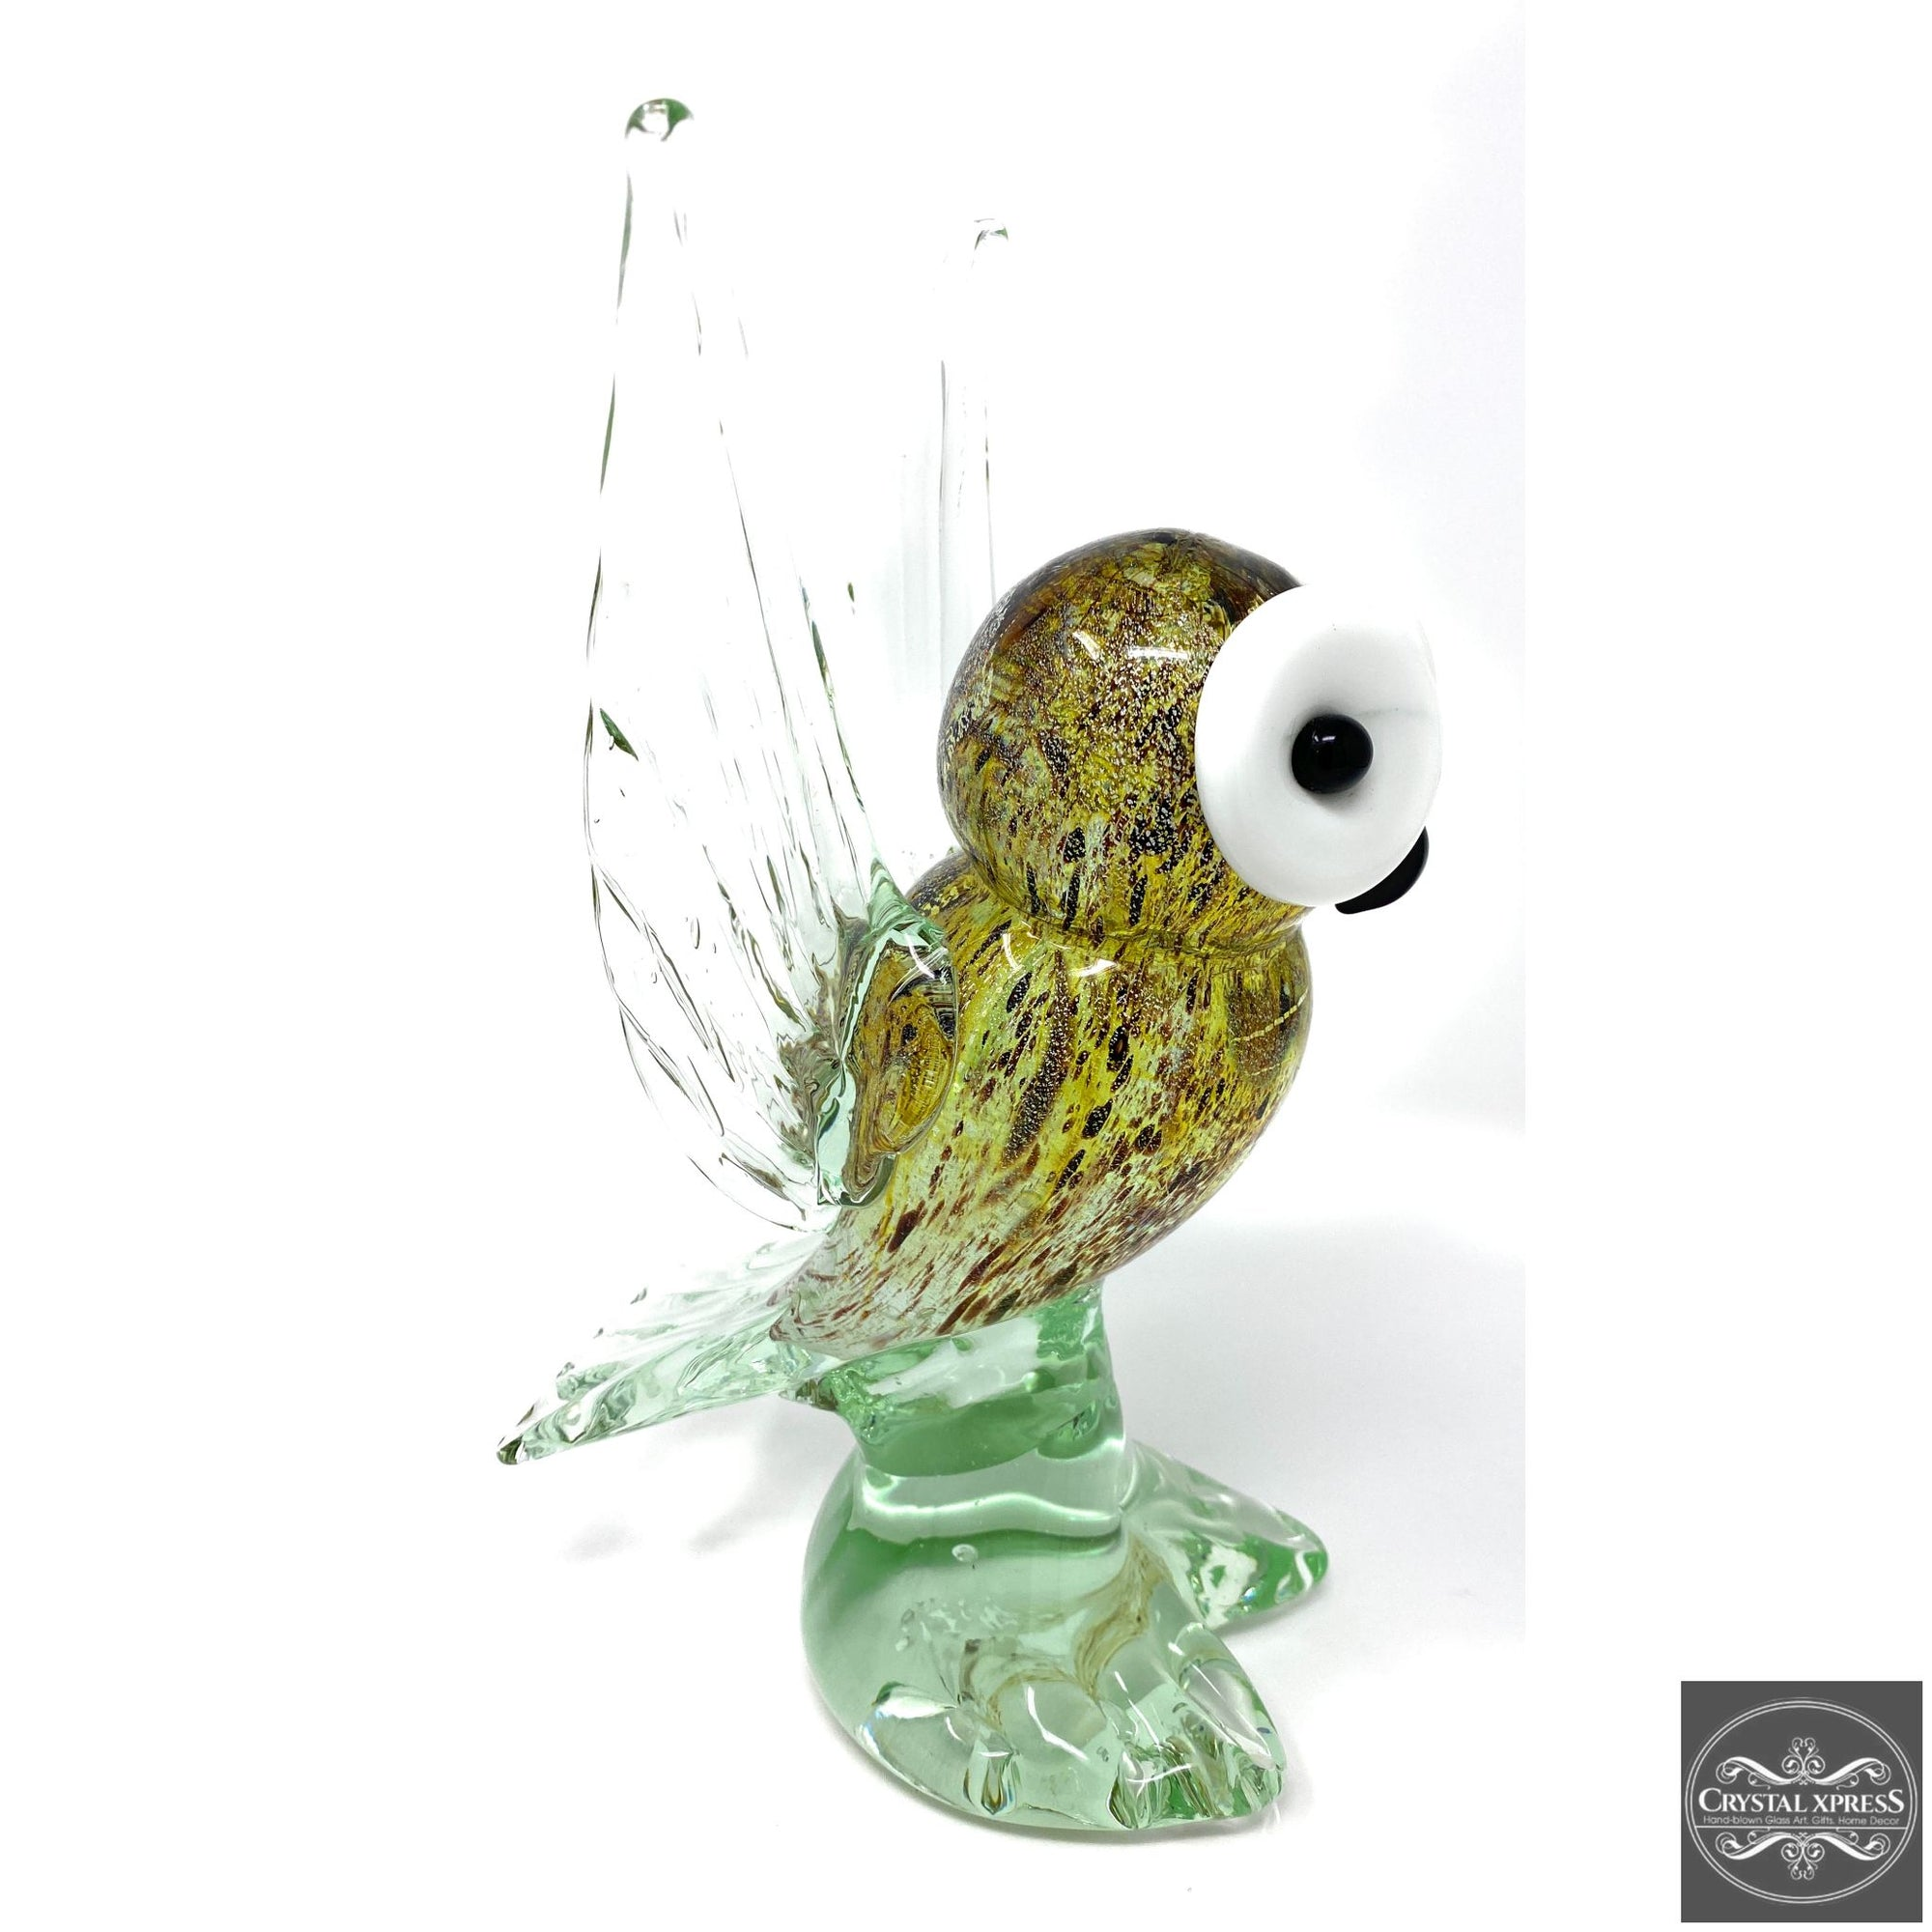 "New 9"" Hand Blown Glass Arctic Owl Glass Murano Style Art Sculpture FigurineCrystal Xpress"